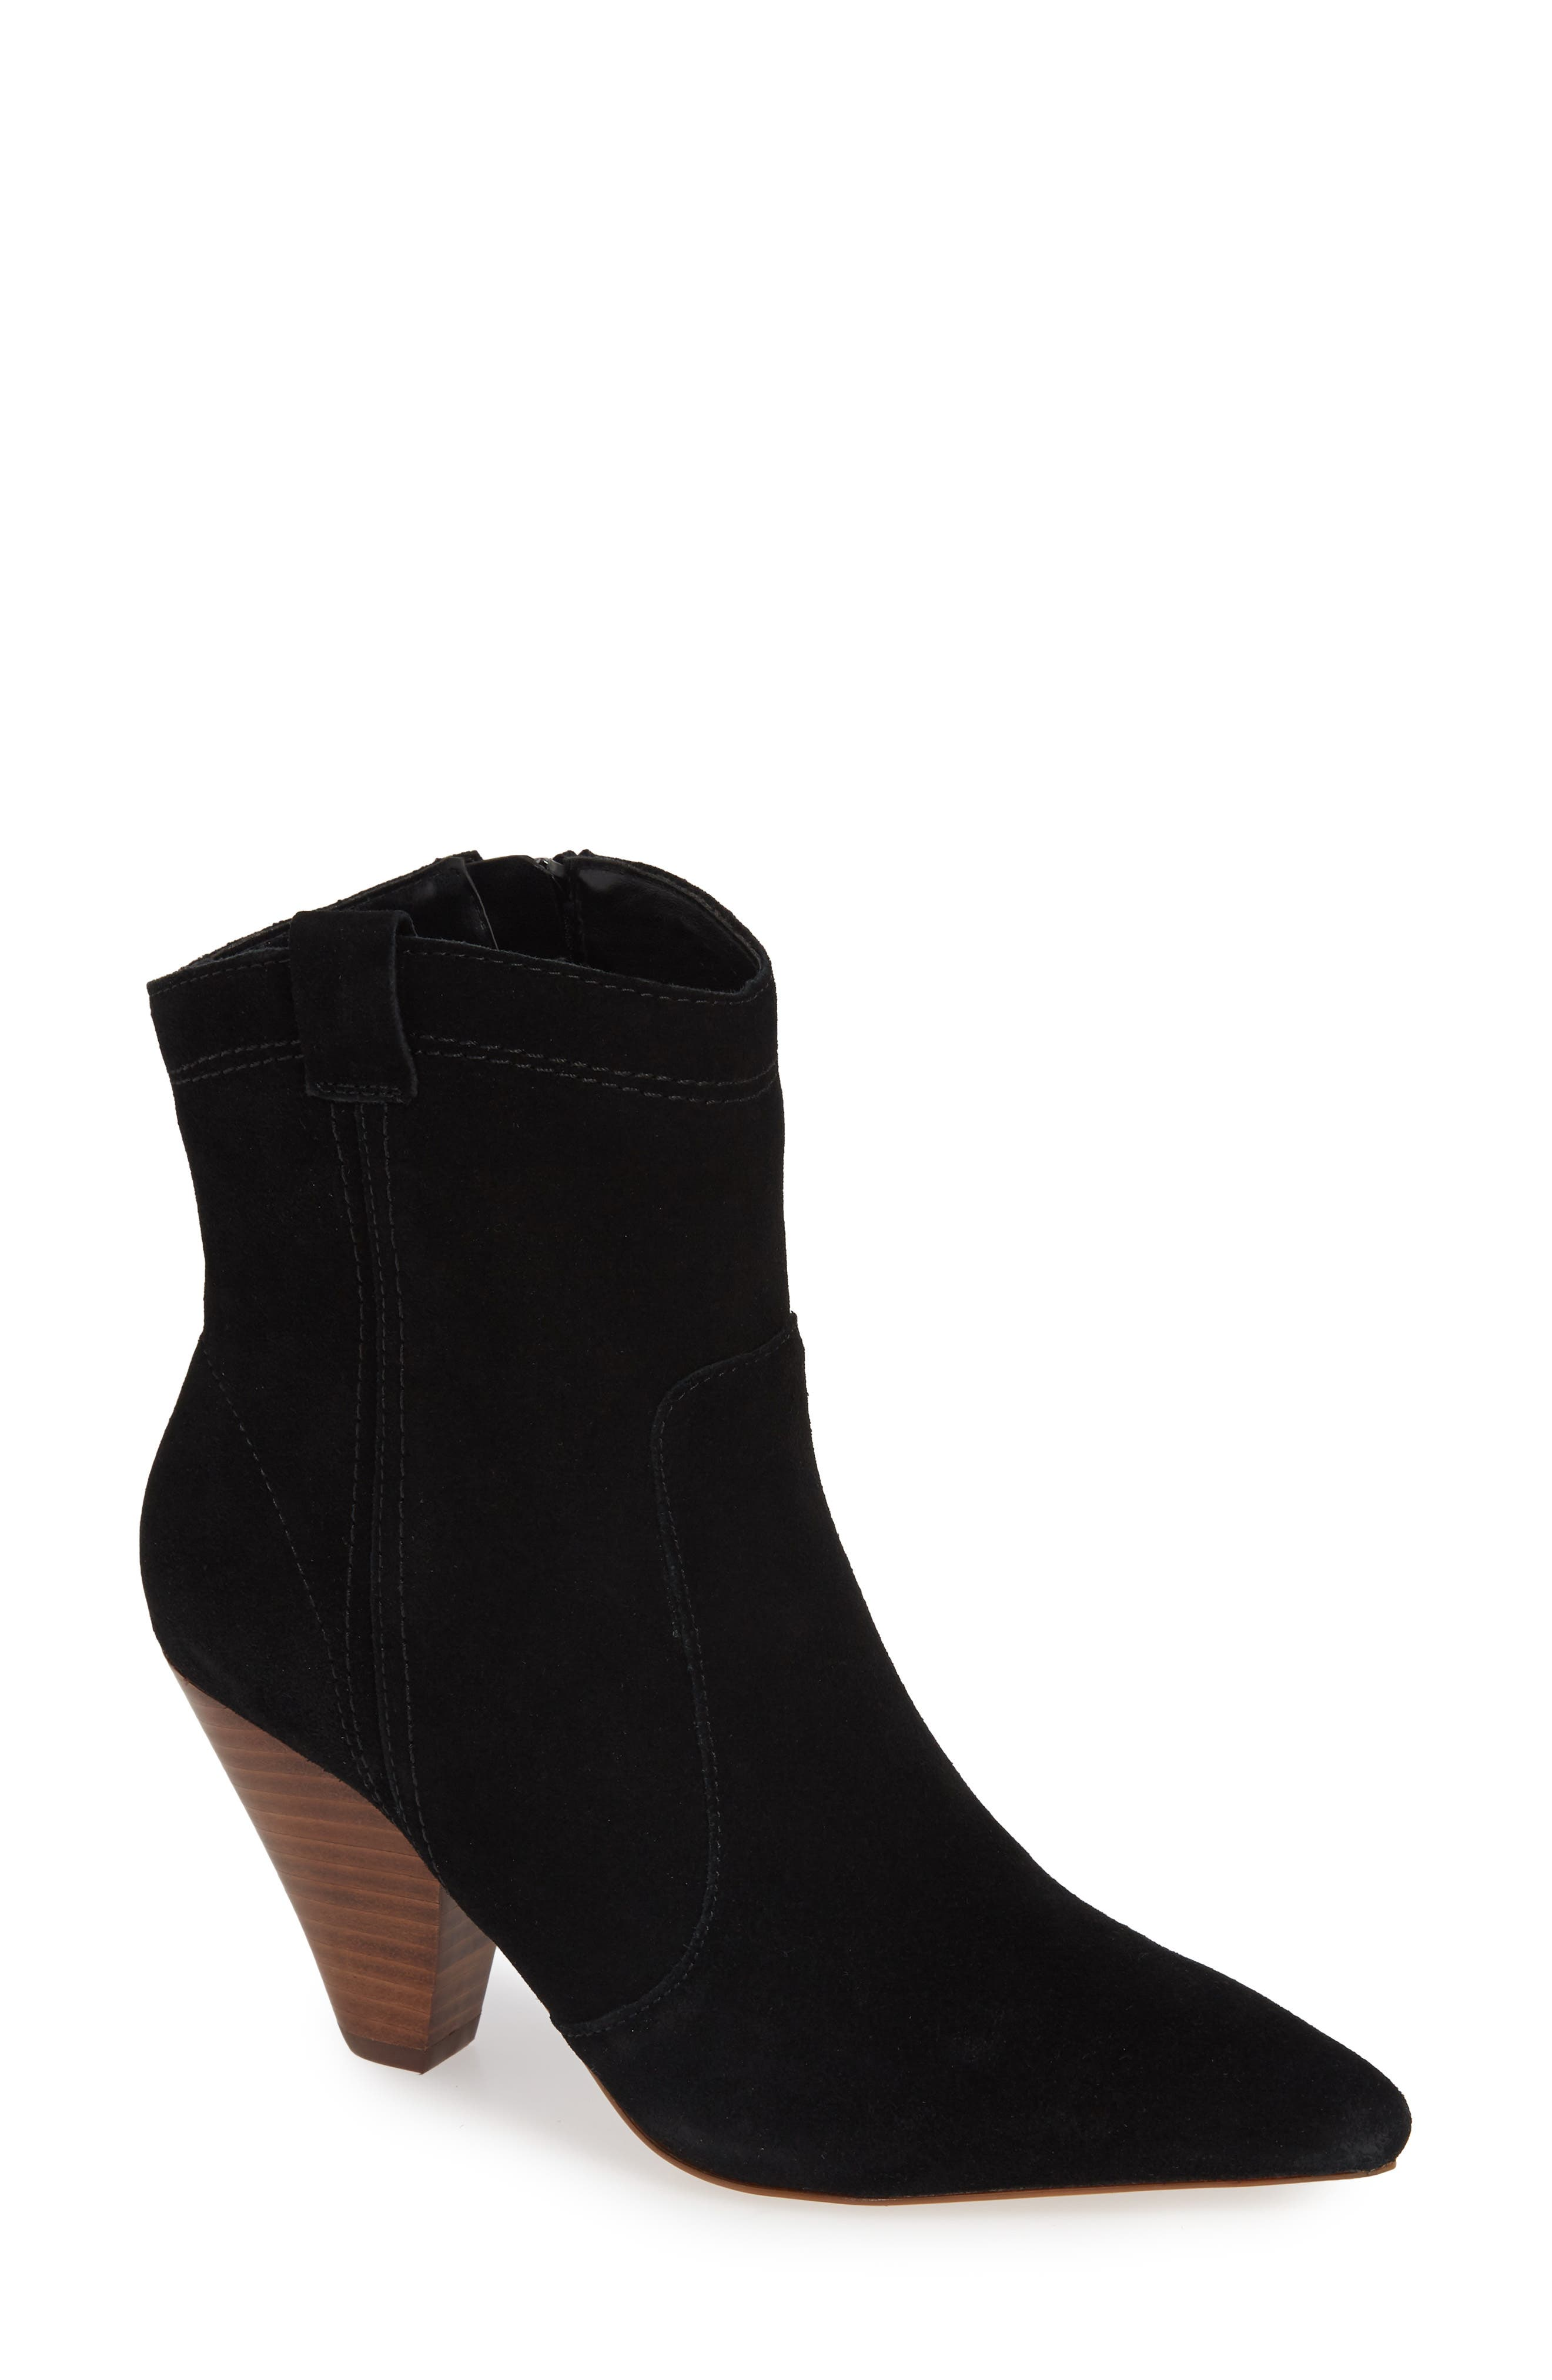 KENSIE,                             Kalila Pointy Toe Bootie,                             Main thumbnail 1, color,                             BLACK SUEDE